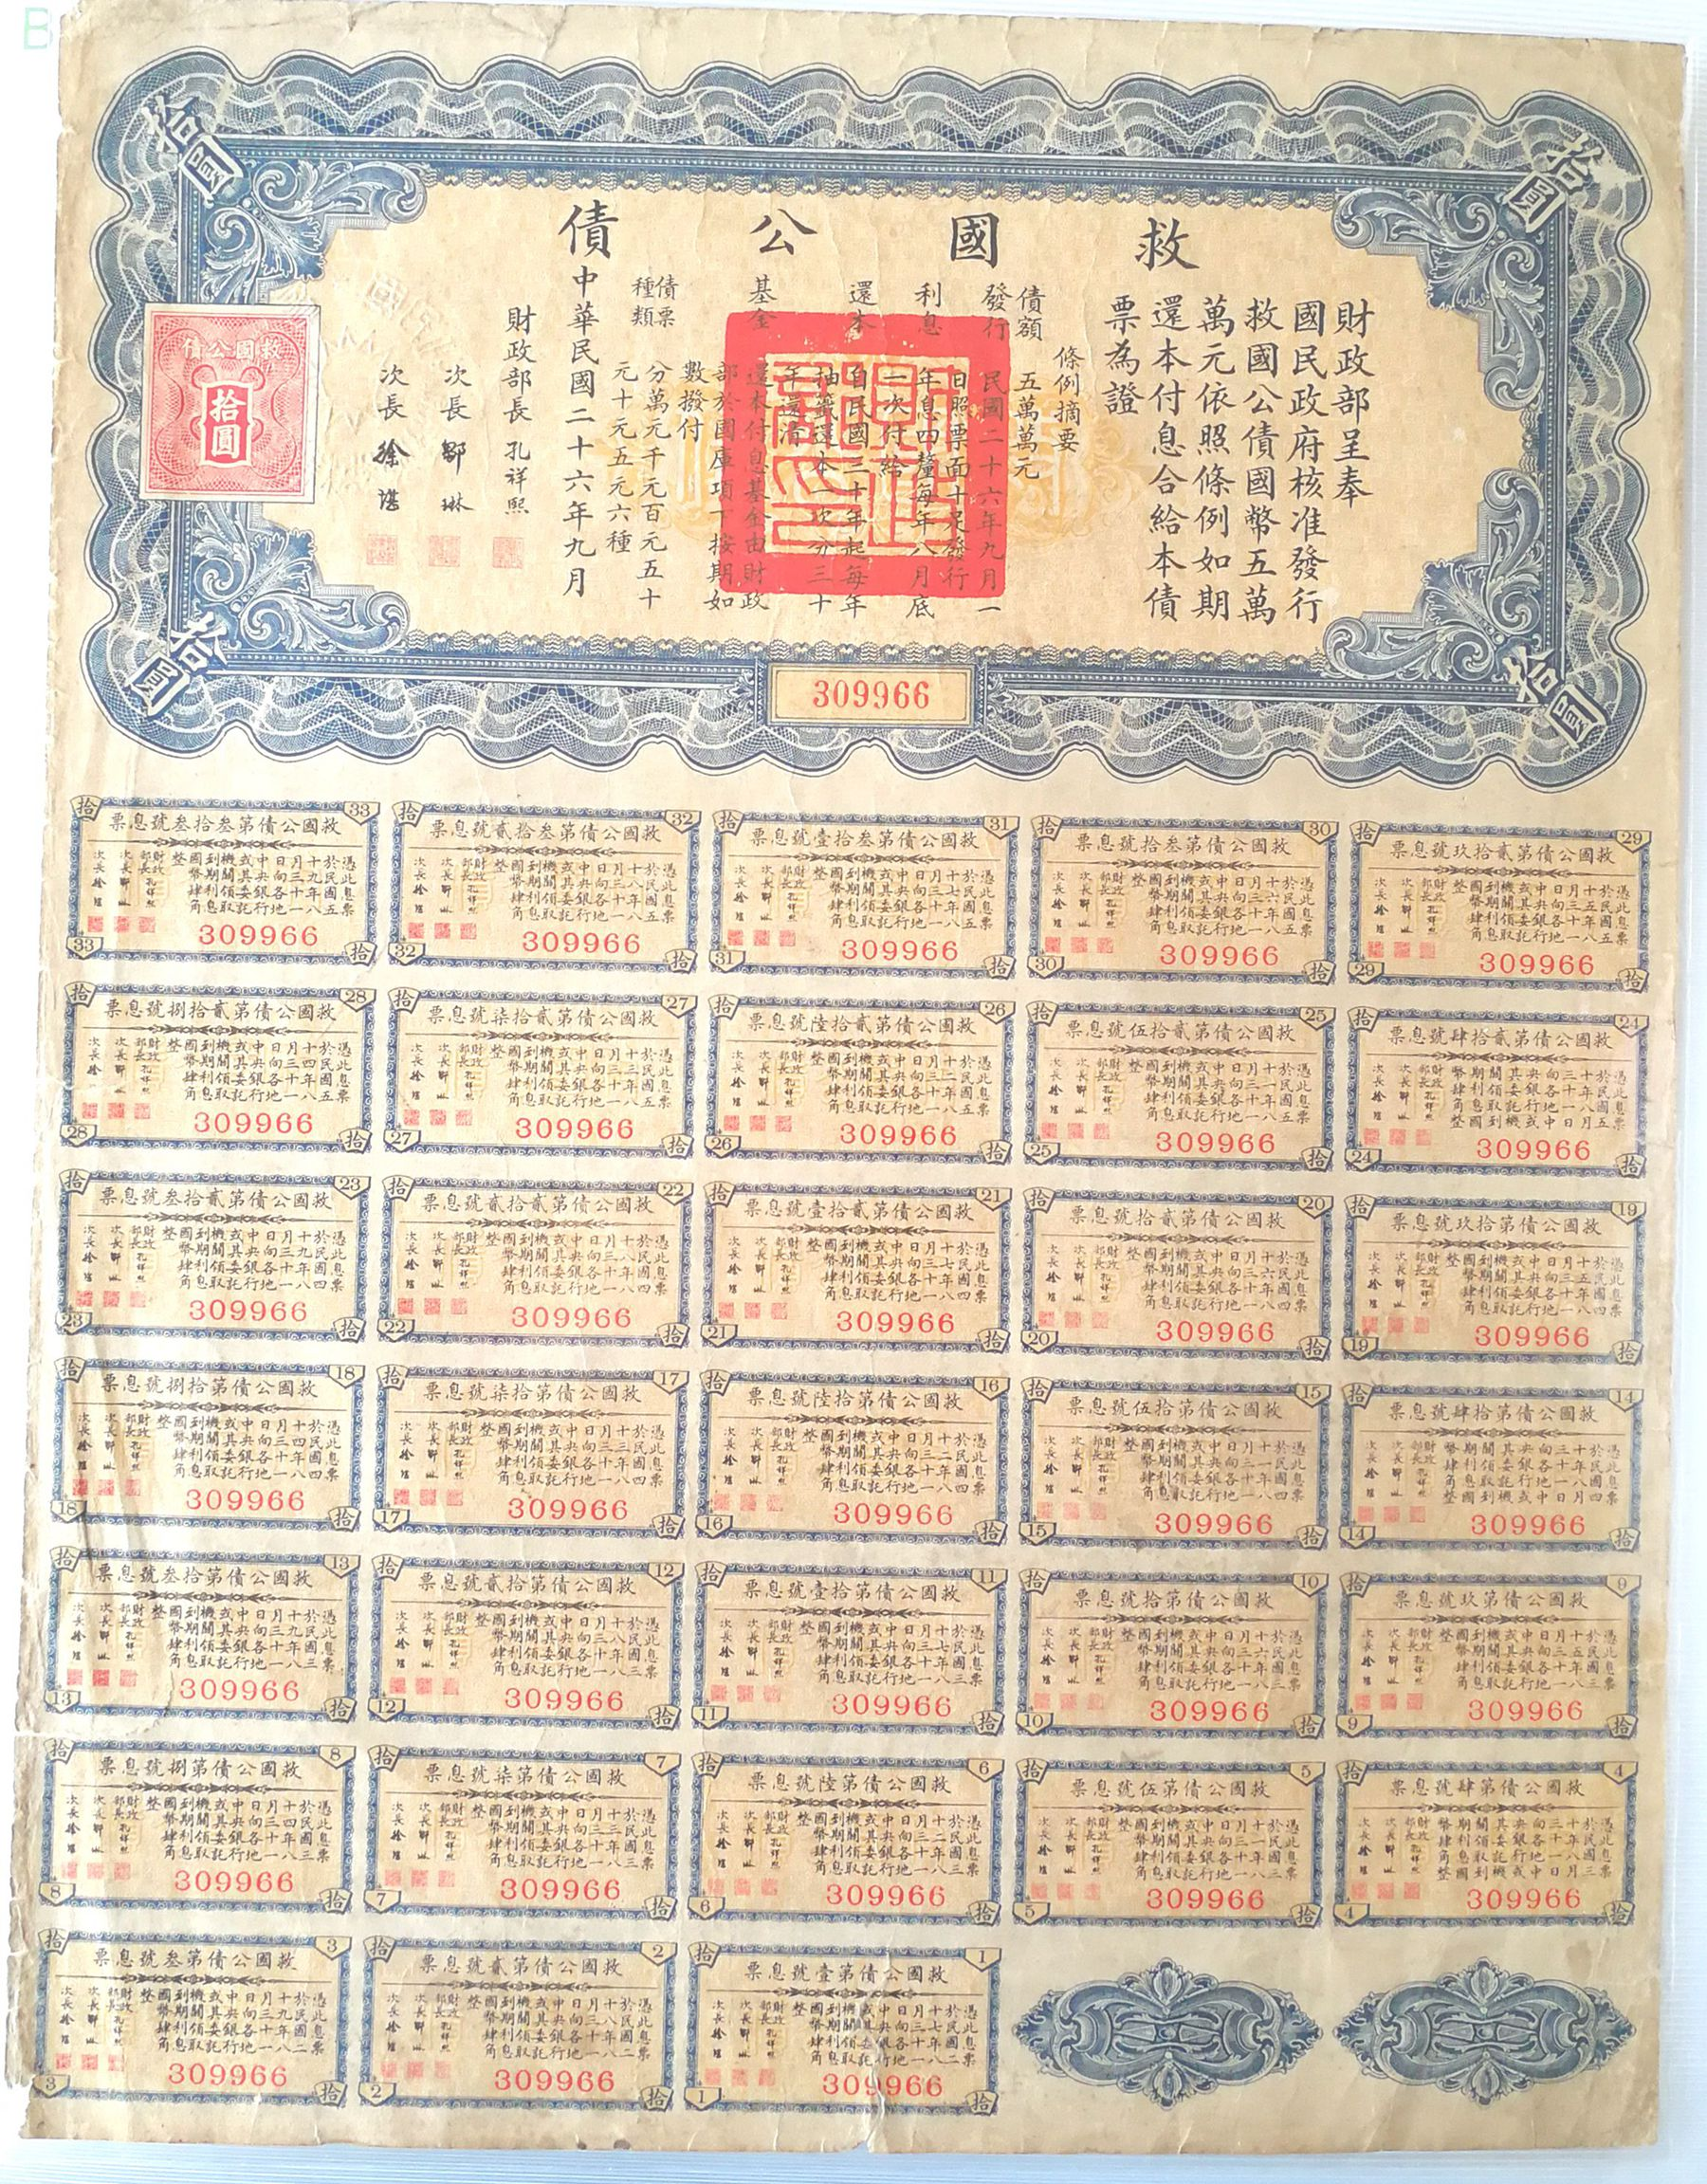 B2016, Liberty Bond of China, 10 Dollars with Full Dividen-Coupons, 1937